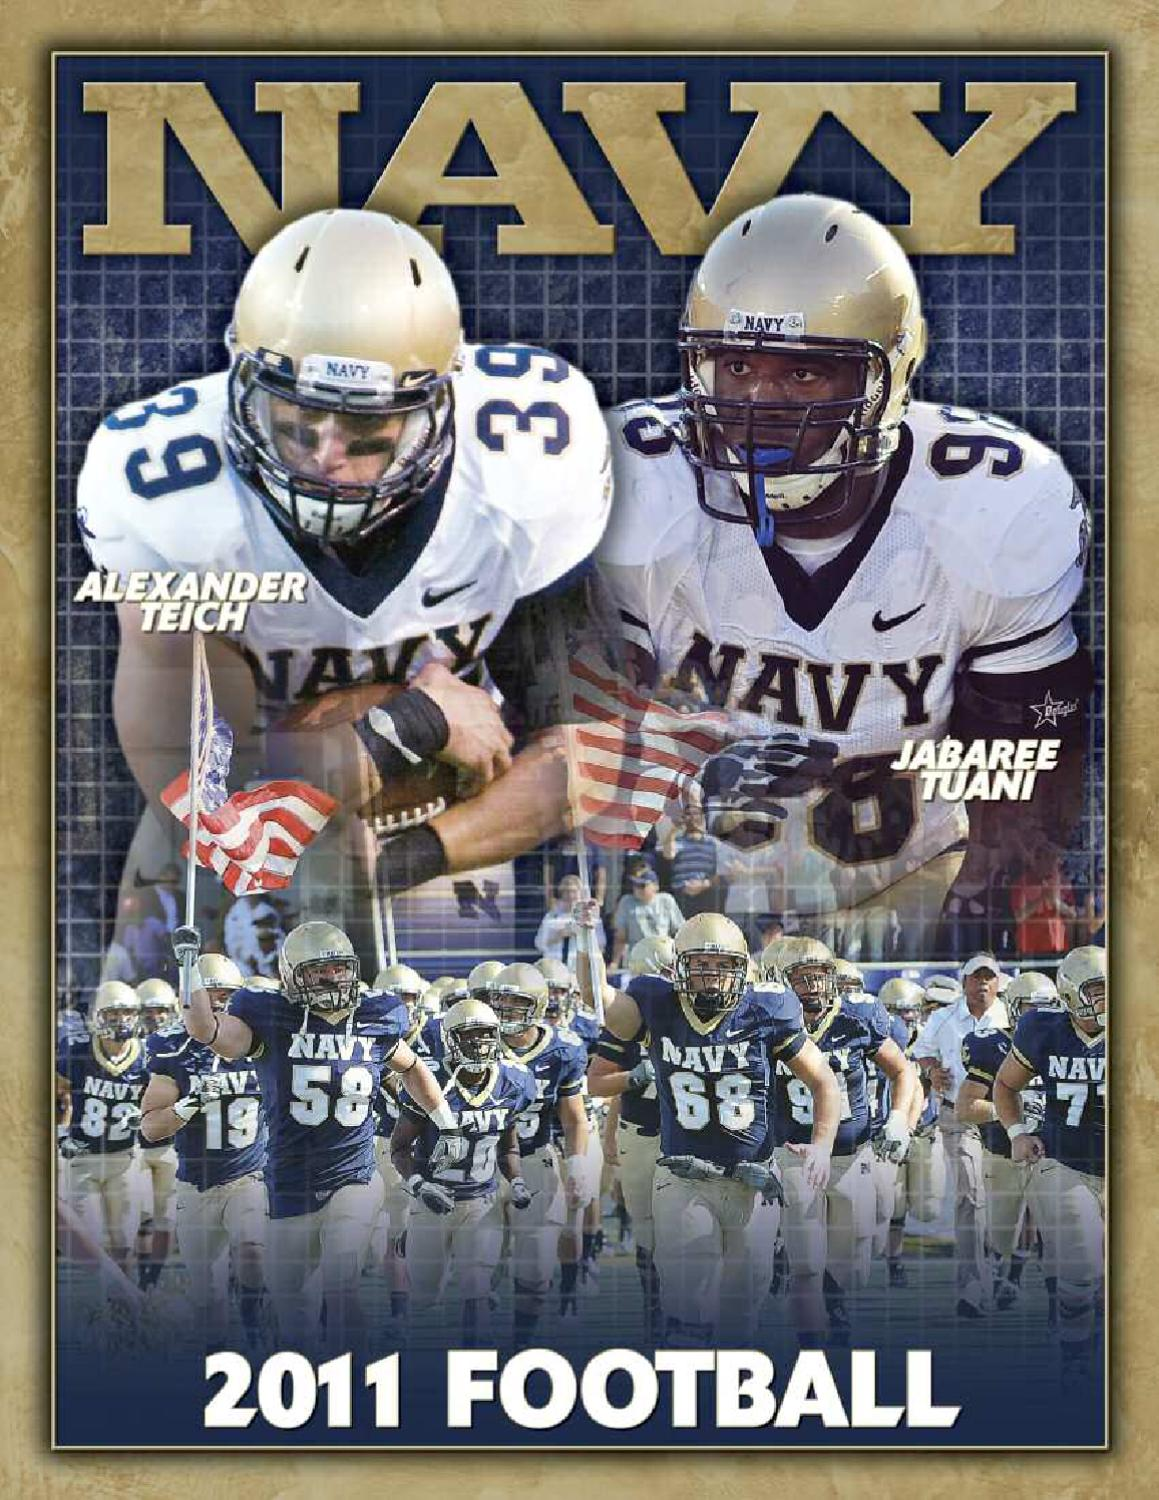 2011 Football Guide by Naval Academy Athletic Association - issuu 47b0adfd5